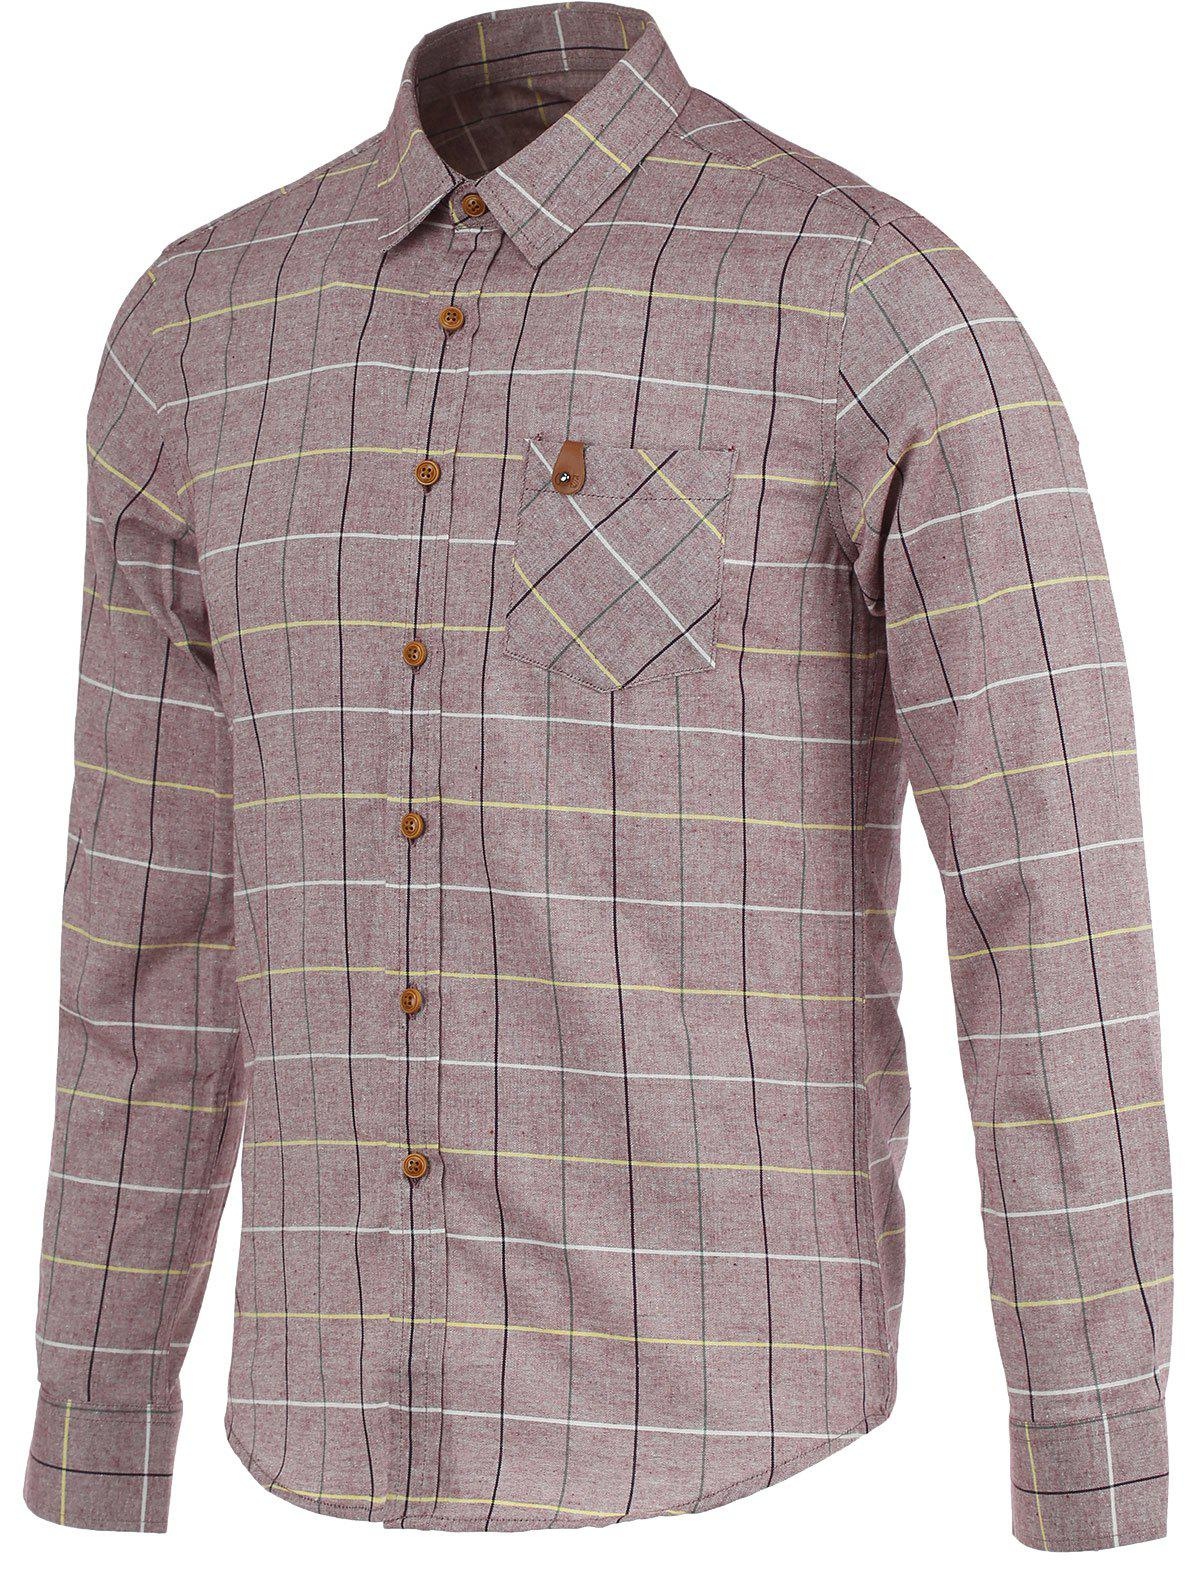 Checked Pocket Turn-Down Collar Long Sleeve Shirt - BRICK RED M